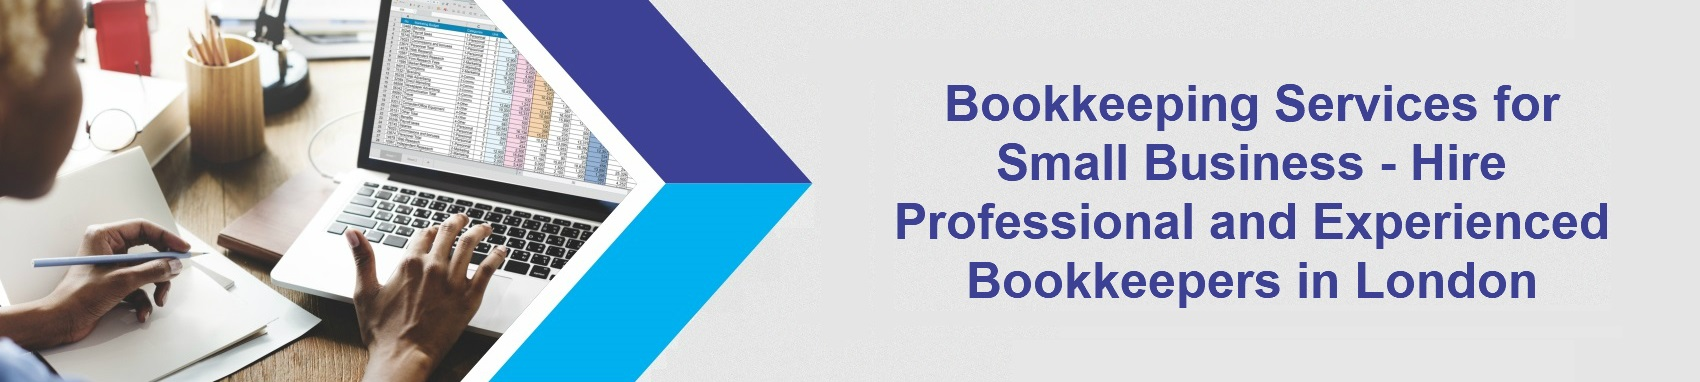 Bookkeeping Services for Small Business – Hire Professional and Experienced Bookkeepers in London